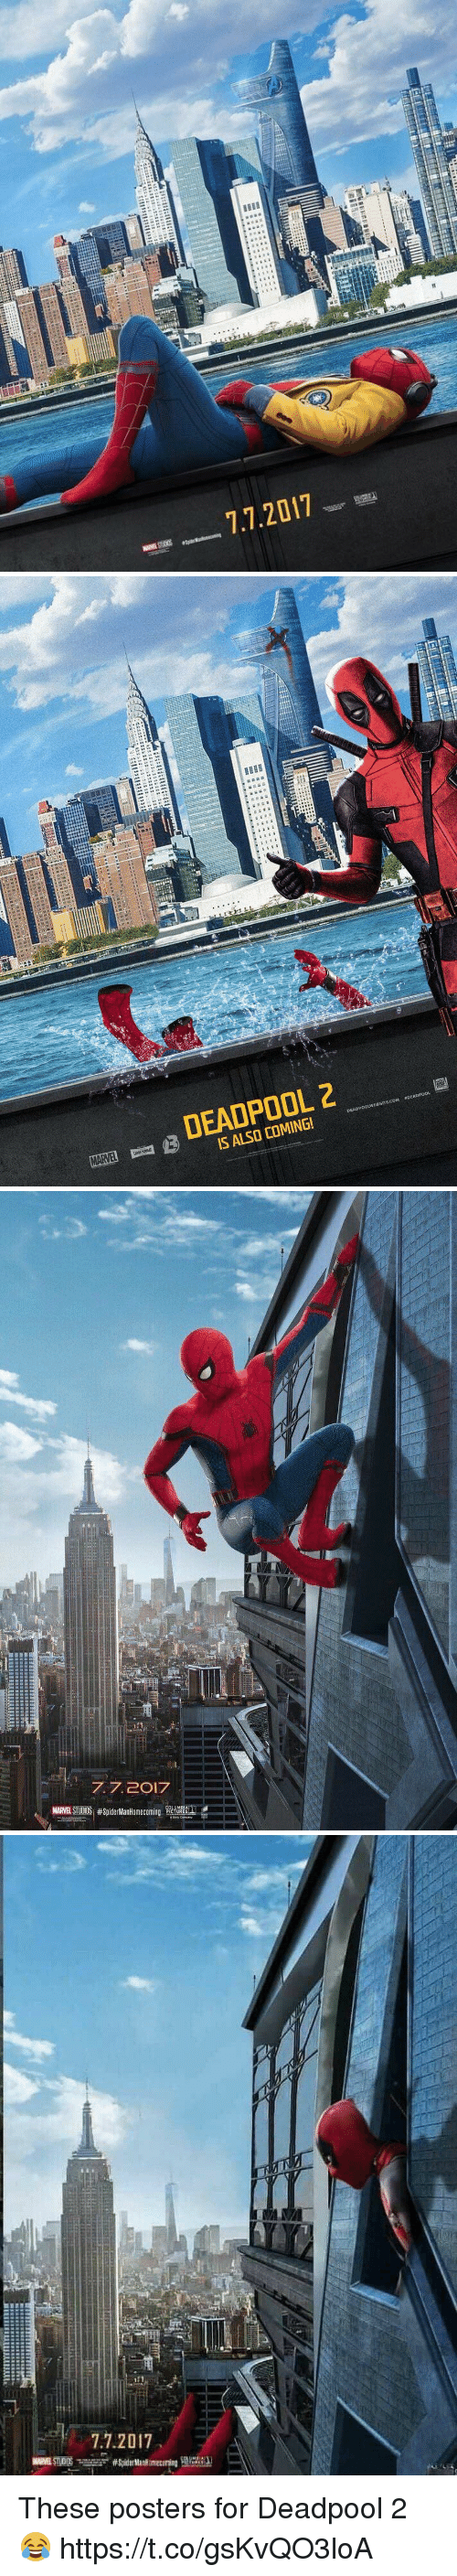 Deadpool, Columbia, and Spy: 7.7.2017   DEADPOOL 2  aDEADPOOL  EBSIT  DP  MAME B   77, 2017  COLUMBIA  MAME STUDOS #SpiderManHomecoming  CTURES   - 7.7.2017  wmusus war #Spi Manitomecarting  n  ELI II lijuuuuu These posters for Deadpool  2 😂 https://t.co/gsKvQO3loA